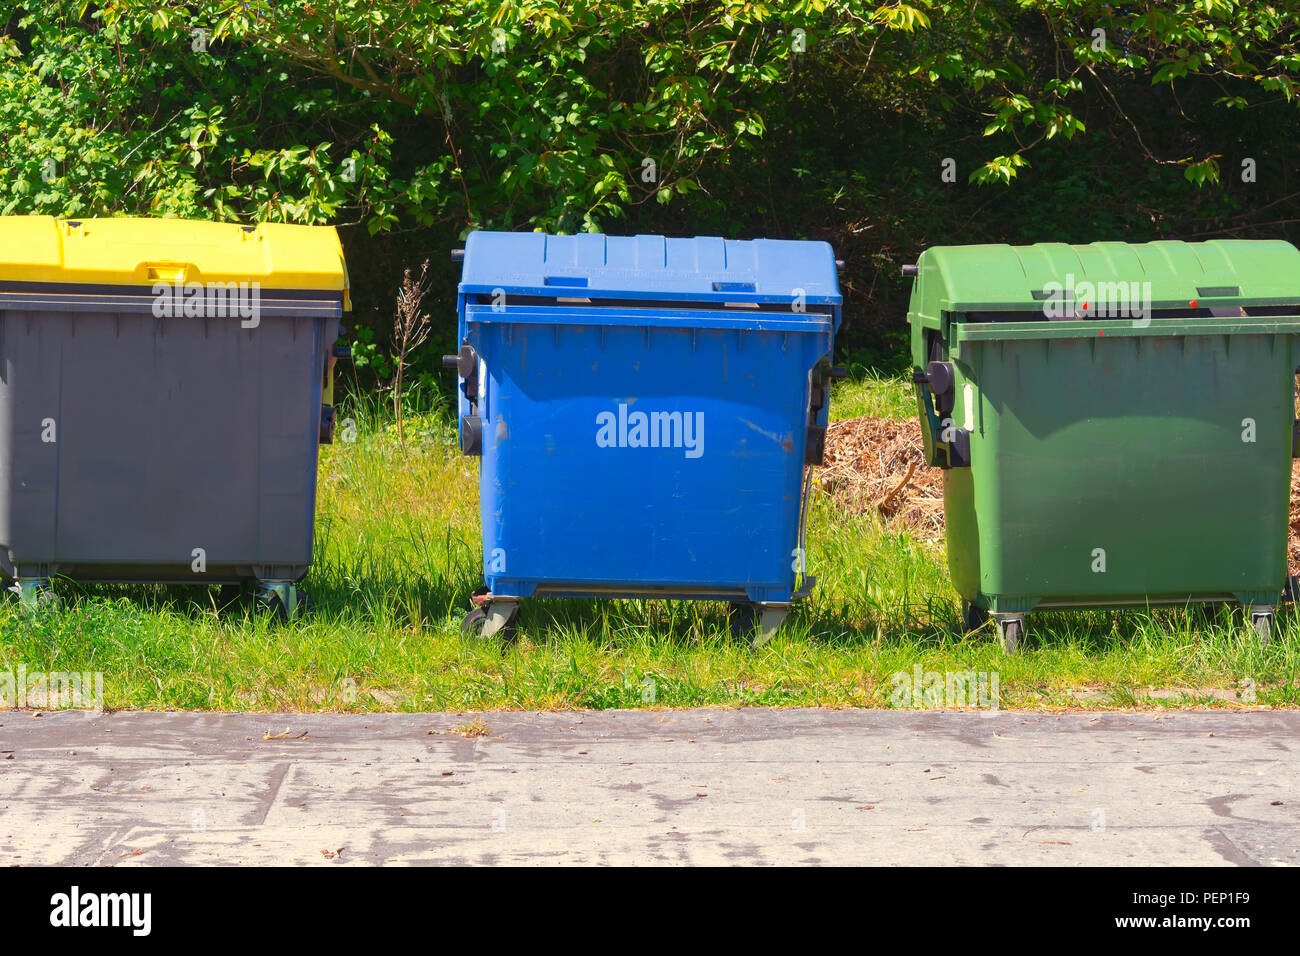 Industrial Waste Containers Dumpster for municipal and private waste Stock Photo